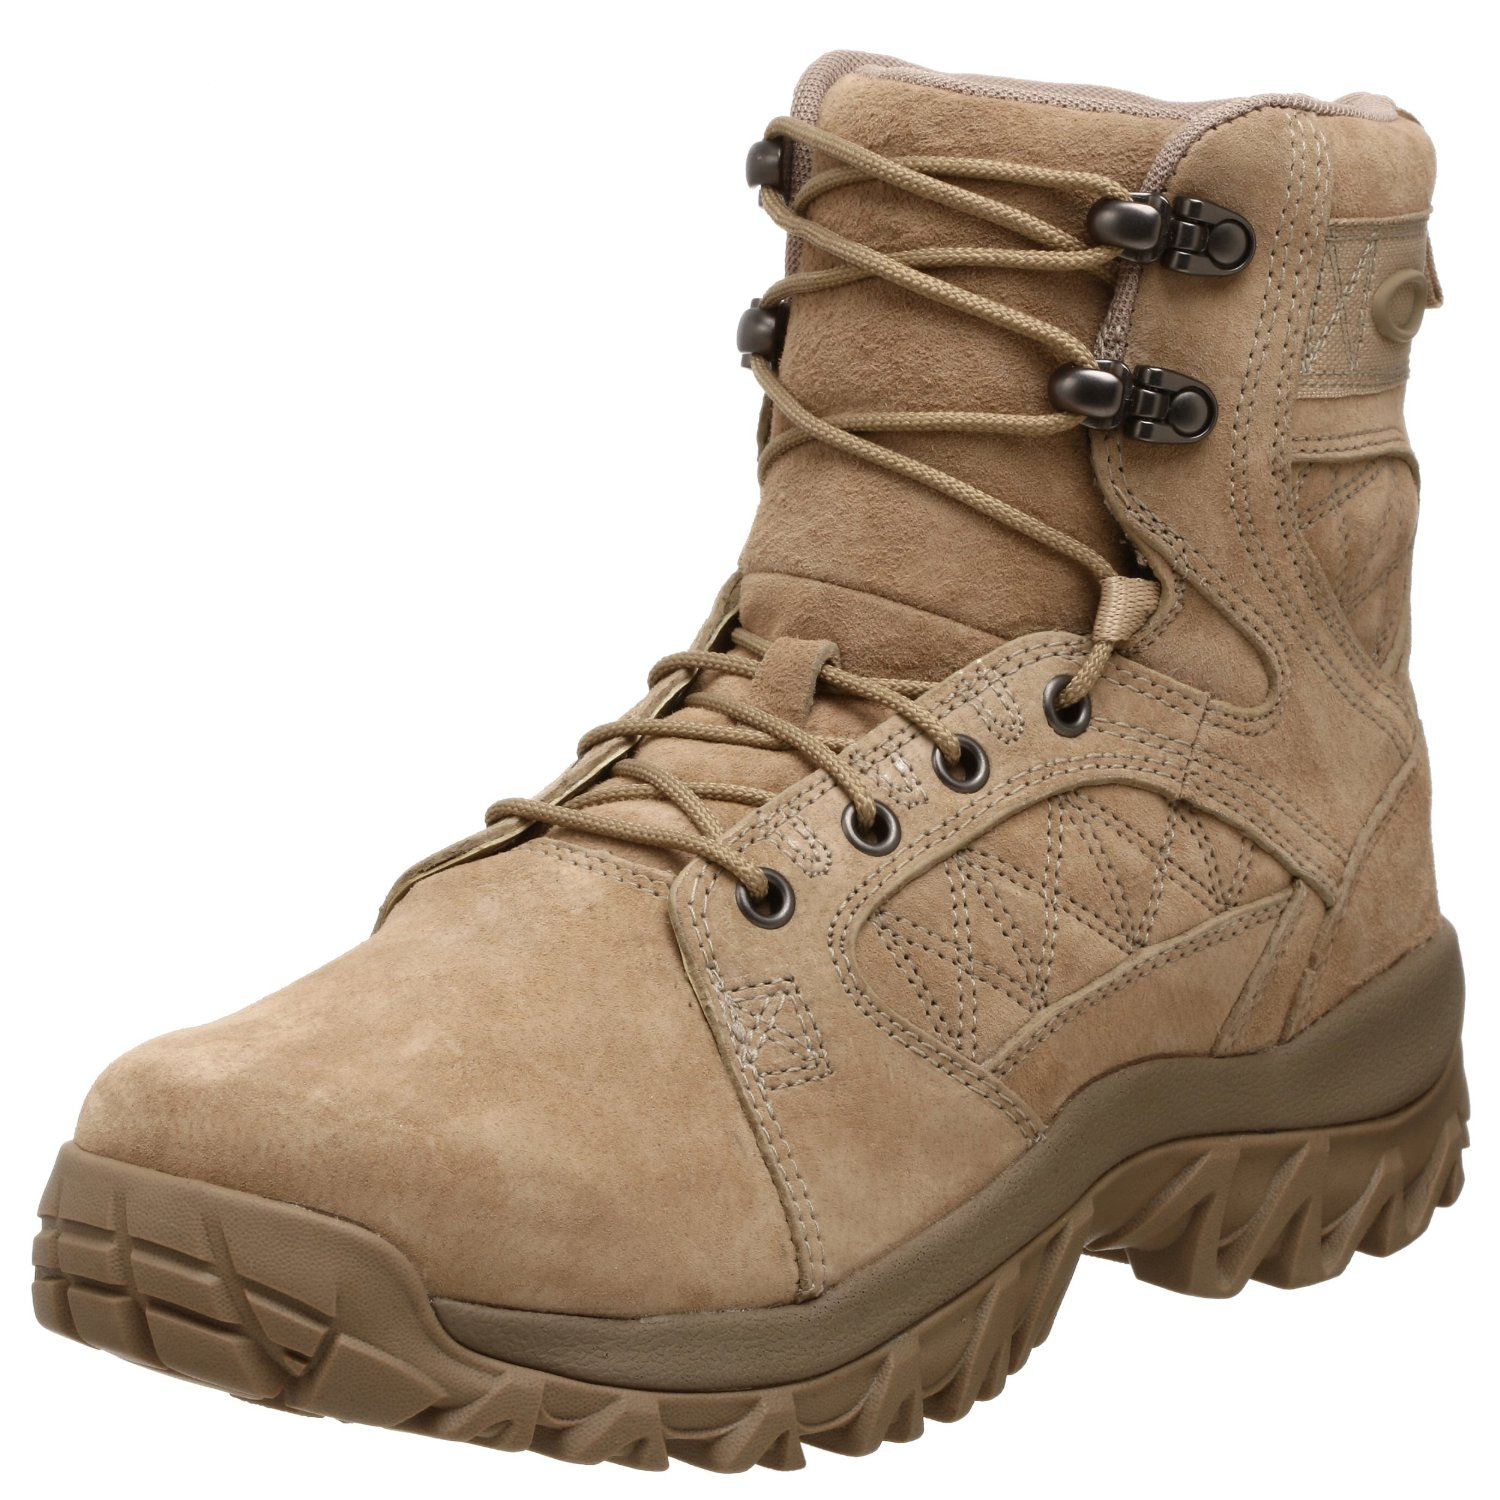 oakley mens tactical six hiking boot